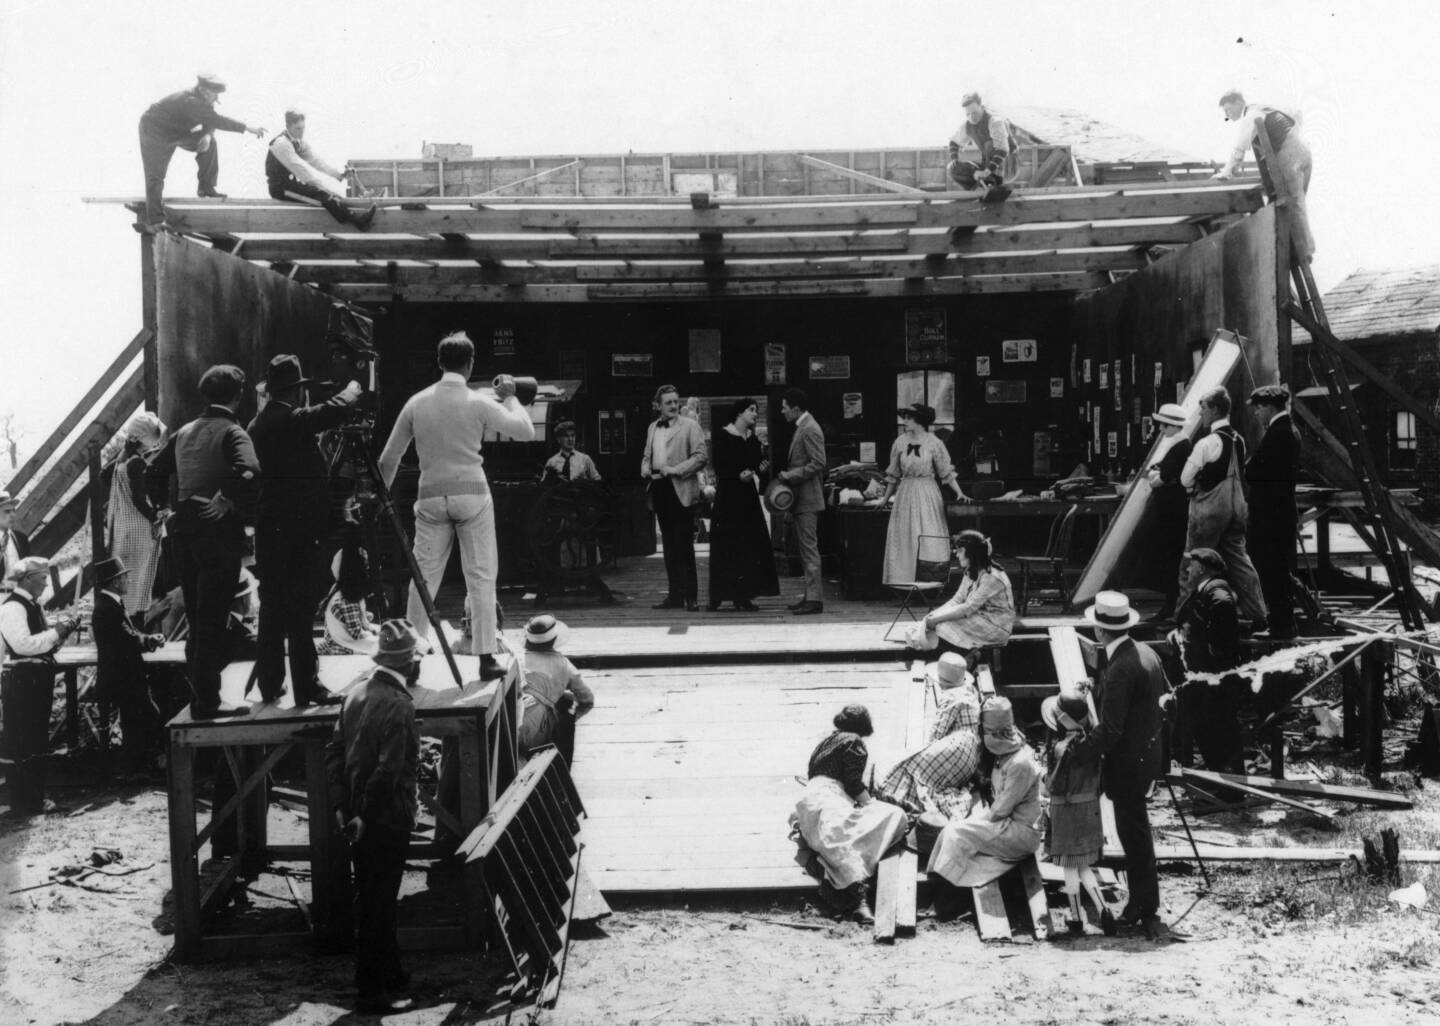 View of an outdoor film set at Vitagraph Studios, showing a film shoot in progress, 1917